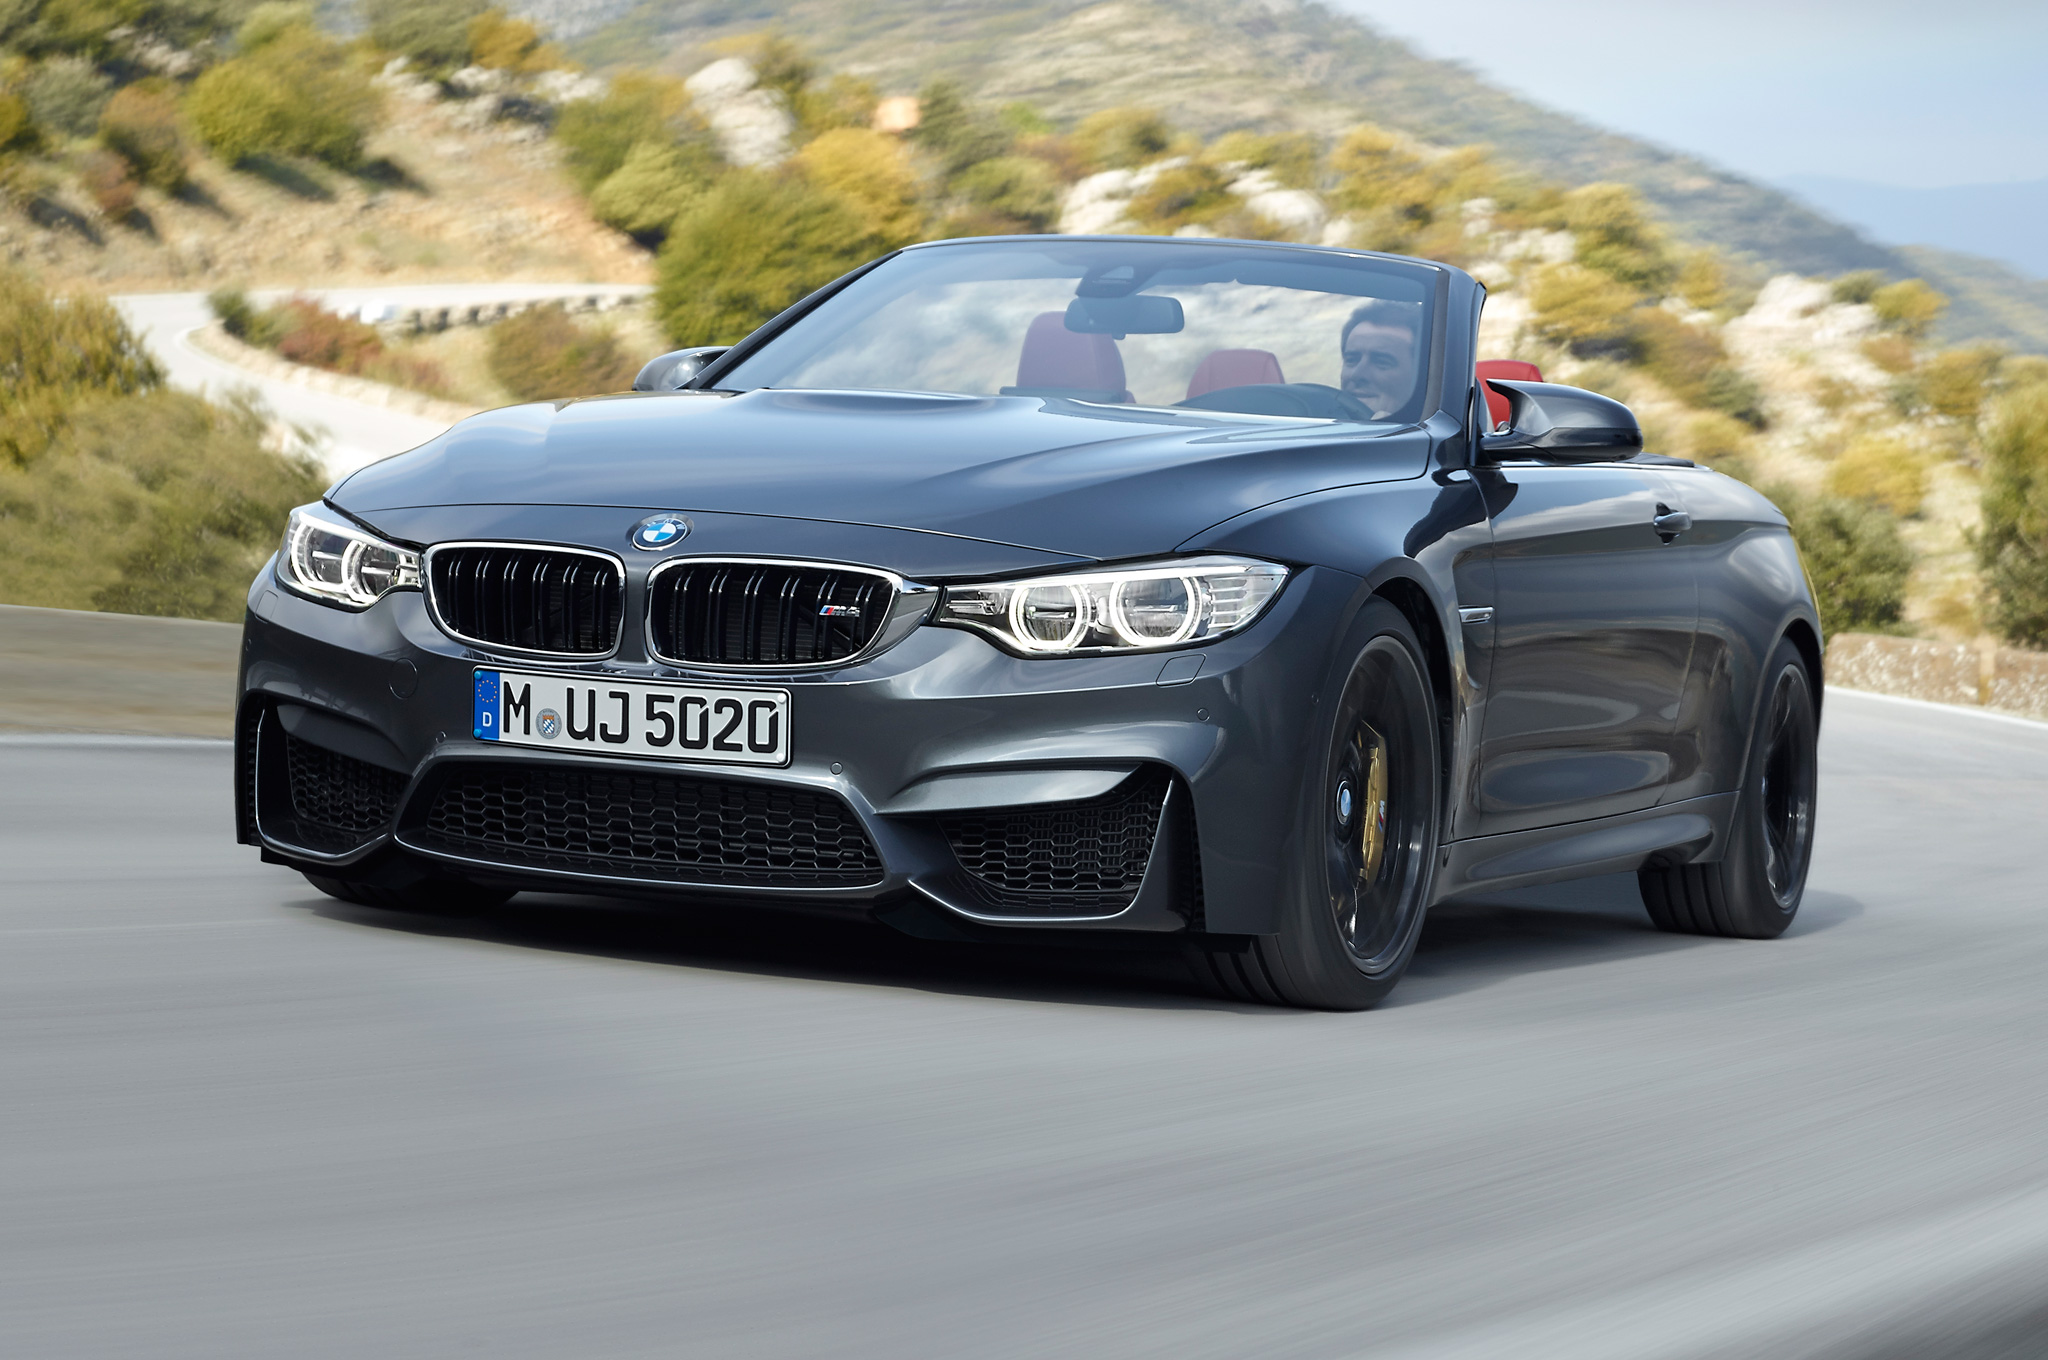 2015 Bmw M4 Convertible Road Test (Photo 45 of 50)